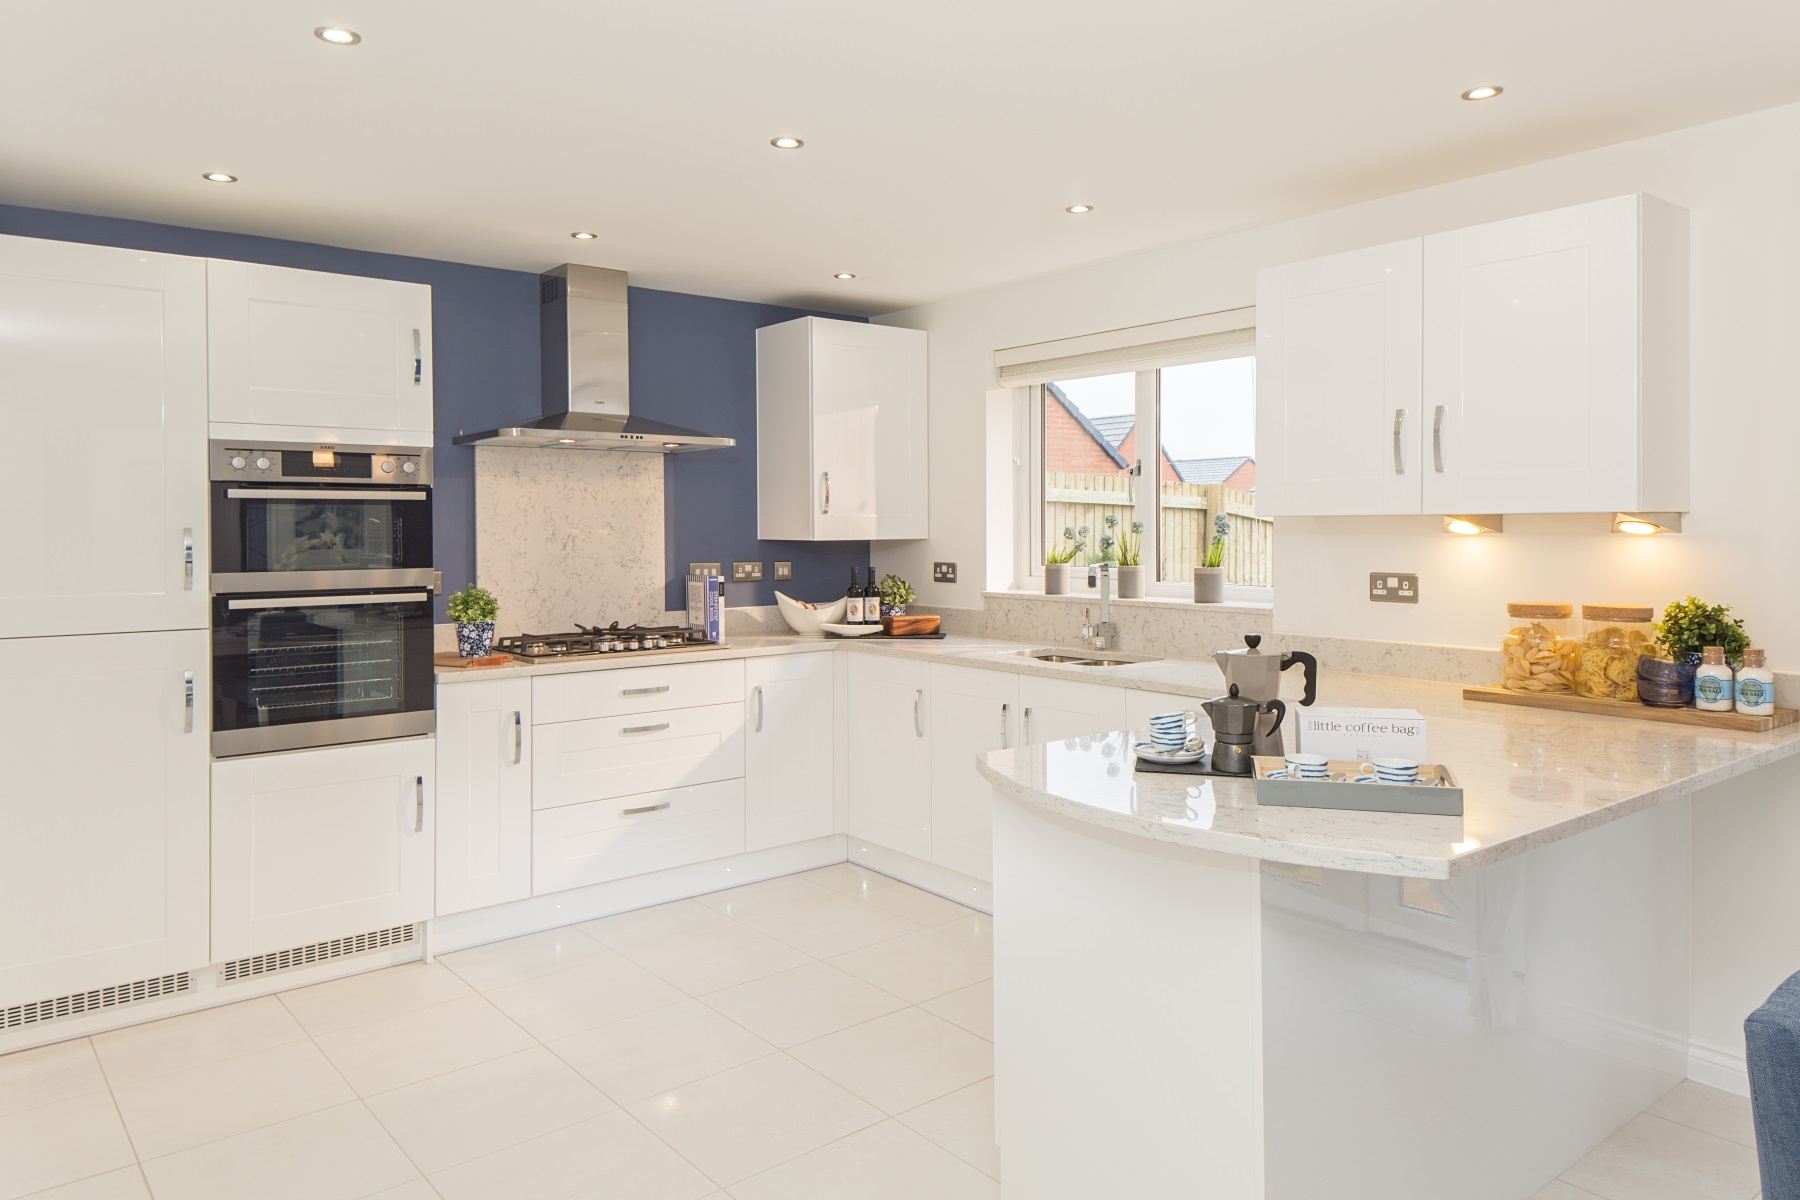 TW Exeter - Plumb Park - Wareham example kitchen